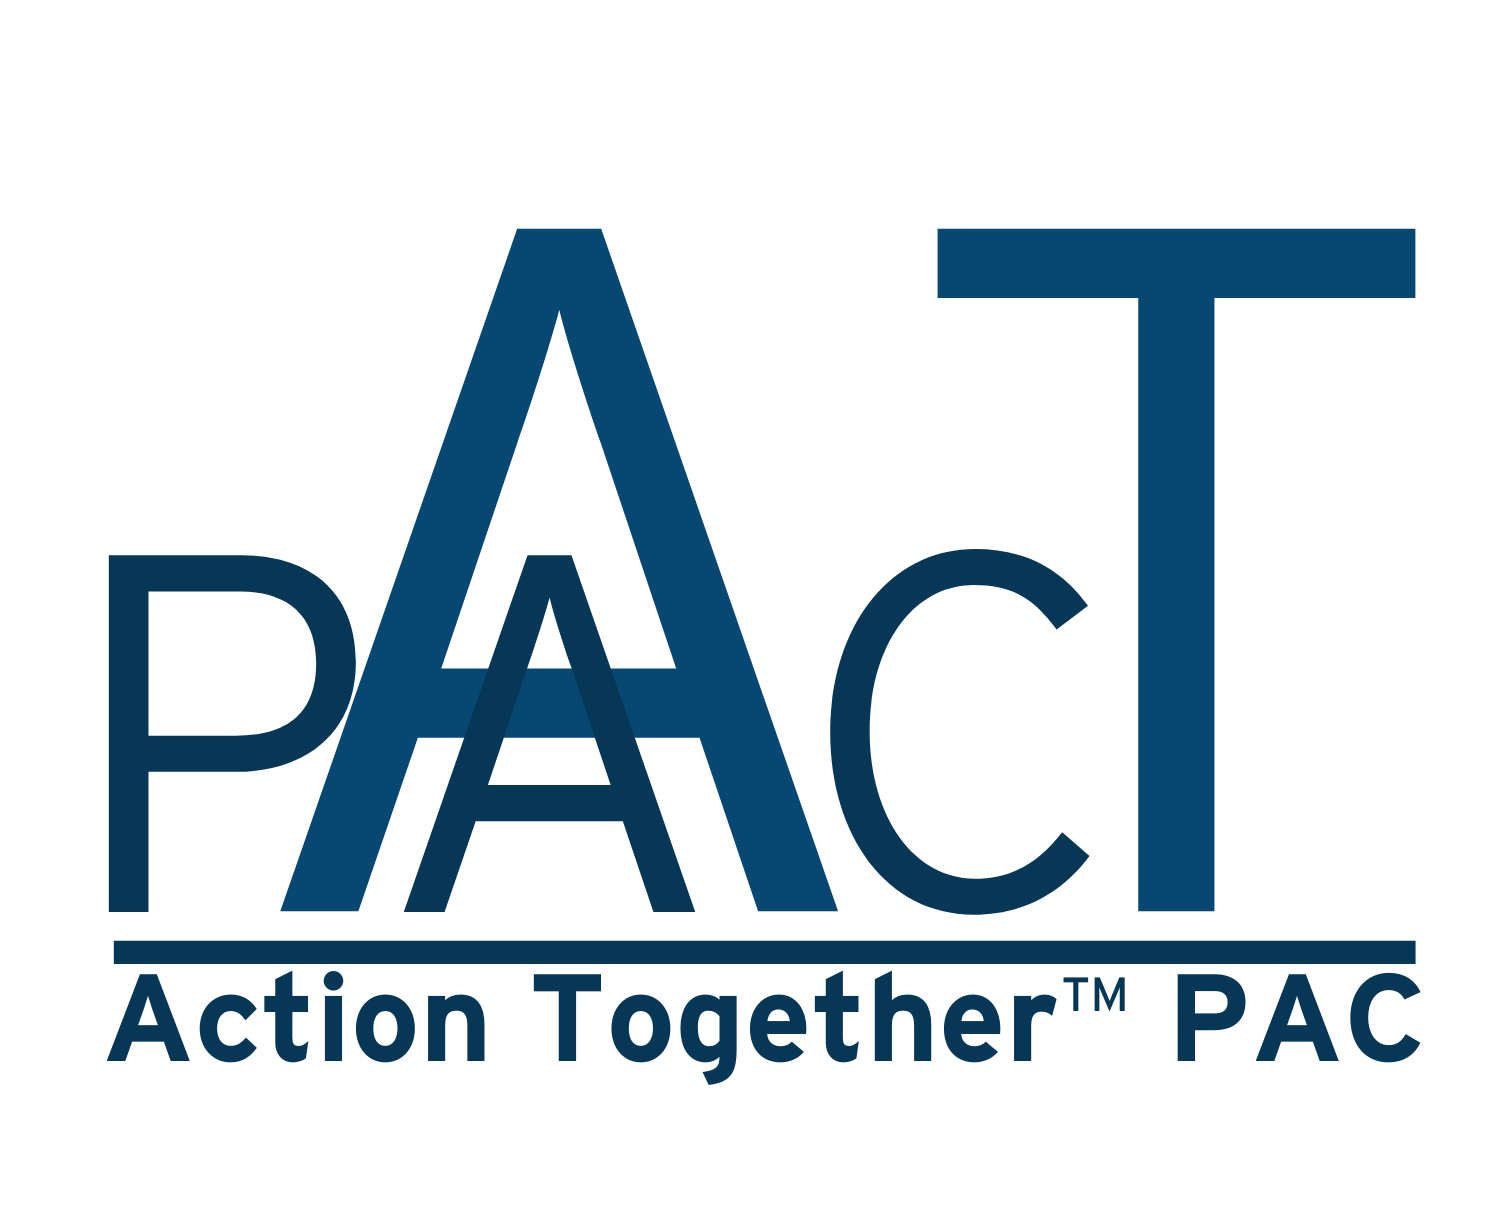 Action Together PAC